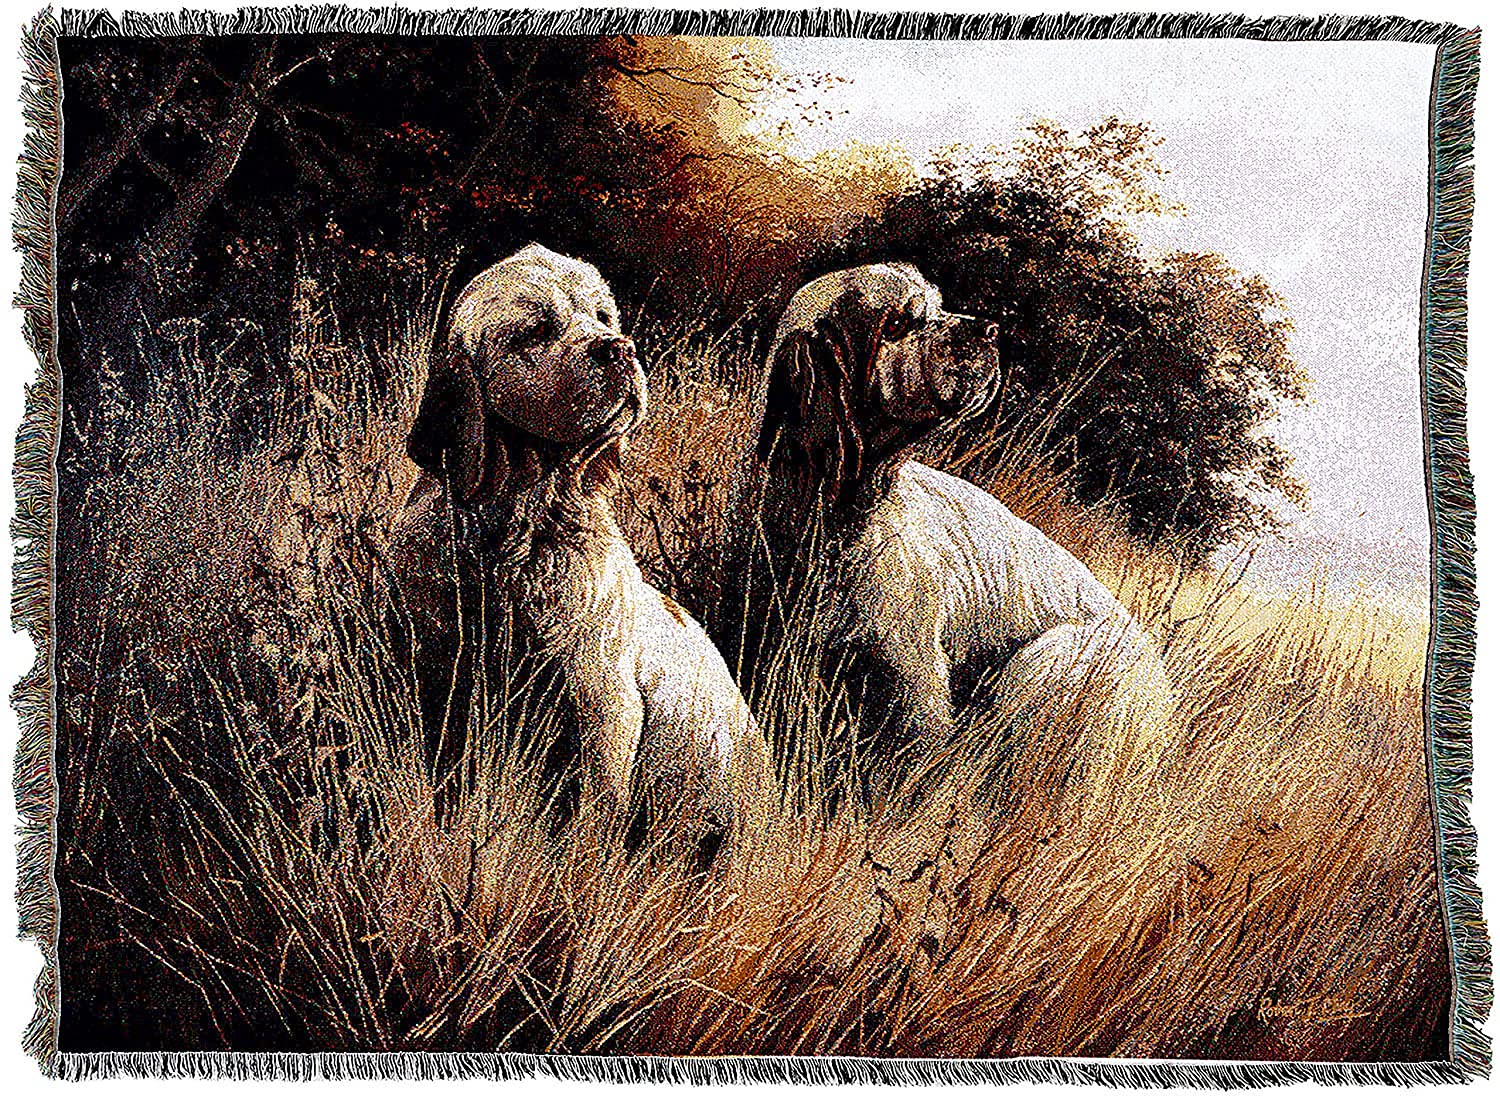 Pure Country Weavers English Springer Spaniel Woven Tapestry Throw Blanket with Fringe Cotton USA Size 72 x 54